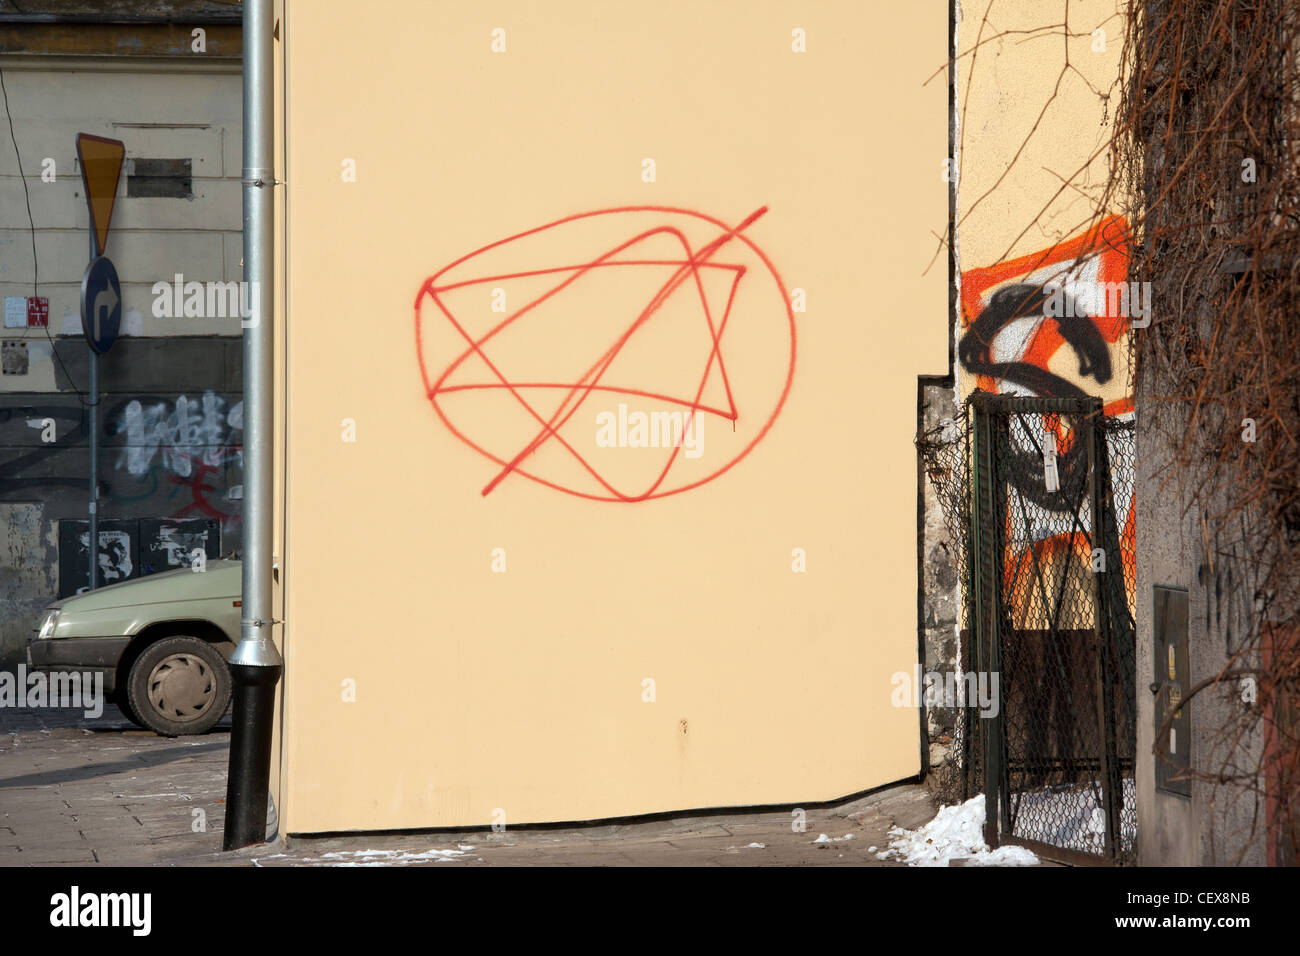 Anti-semitic graffiti on a wall in the Jewish Quarter of Kazimierz in the city of Krakow in Poland. - Stock Image